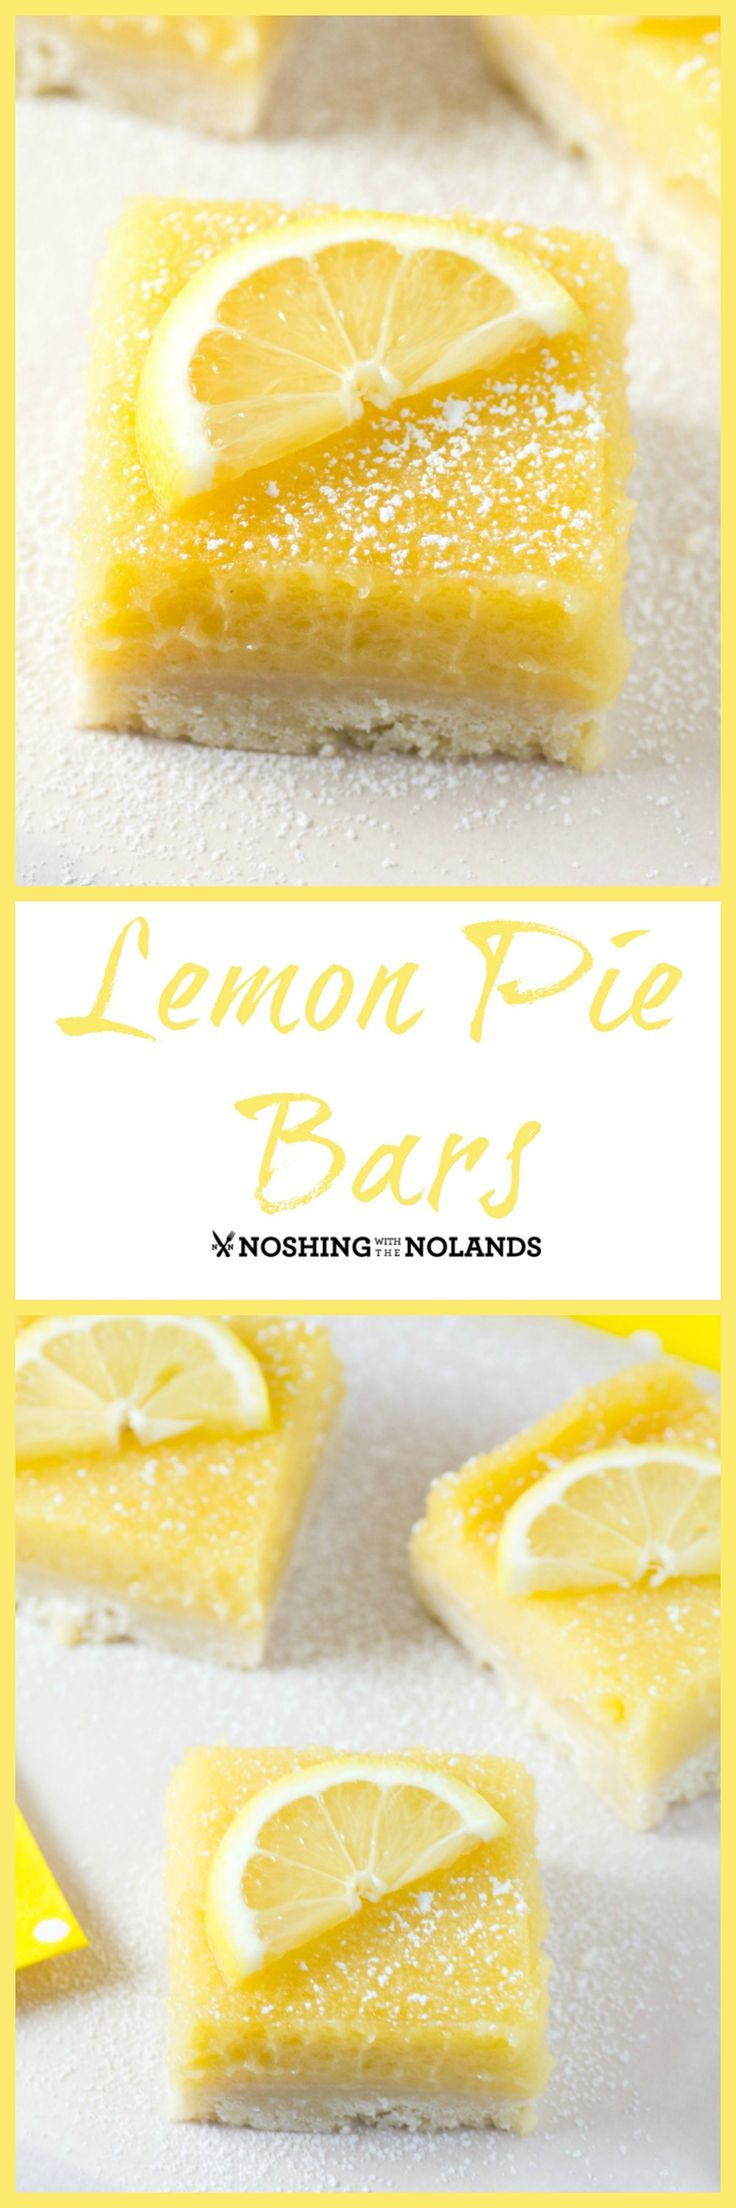 Lemon Pie Bars by Noshing With The Nolands are bursting with wonderful citrus flavor and will liven you up for spring. Perfect treat for Easter too!